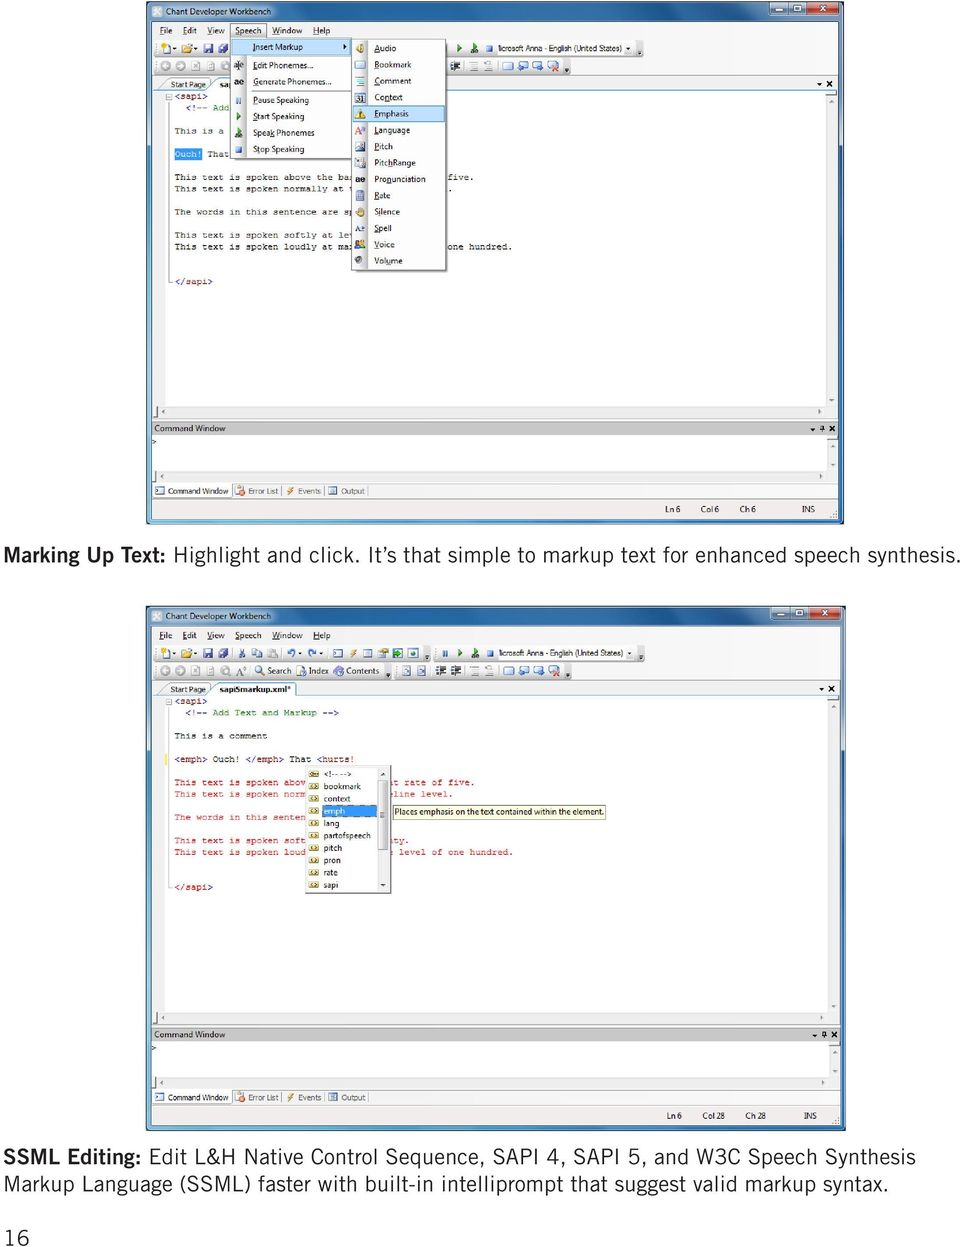 SSML Editing: Edit L&H Native Control Sequence, SAPI 4, SAPI 5, and